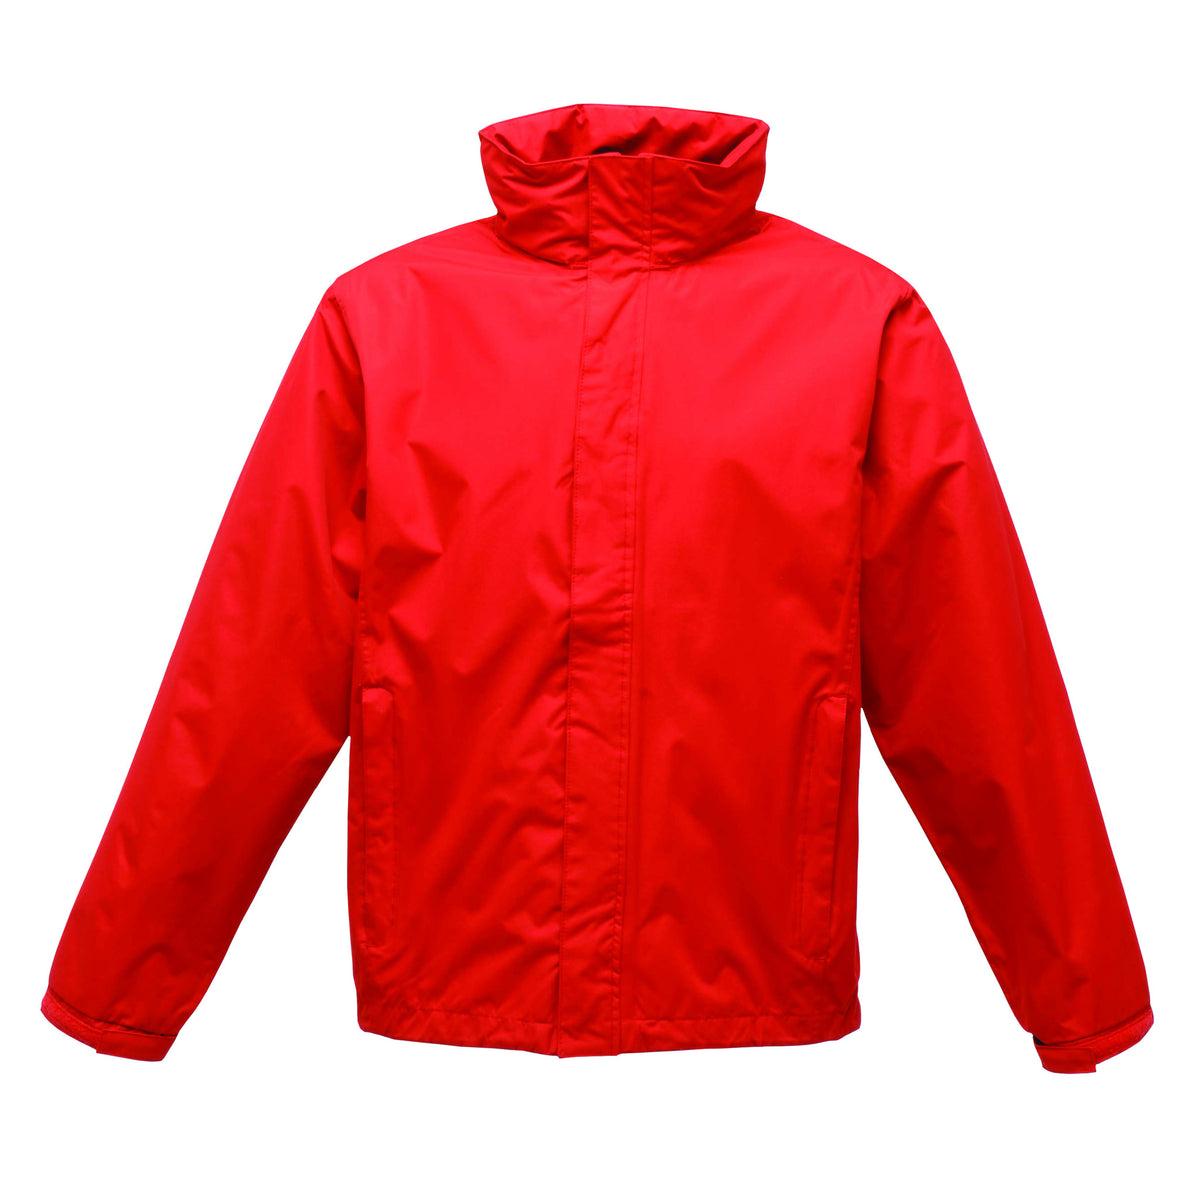 Regatta Pace II Jacket - peterdrew.com  - 4